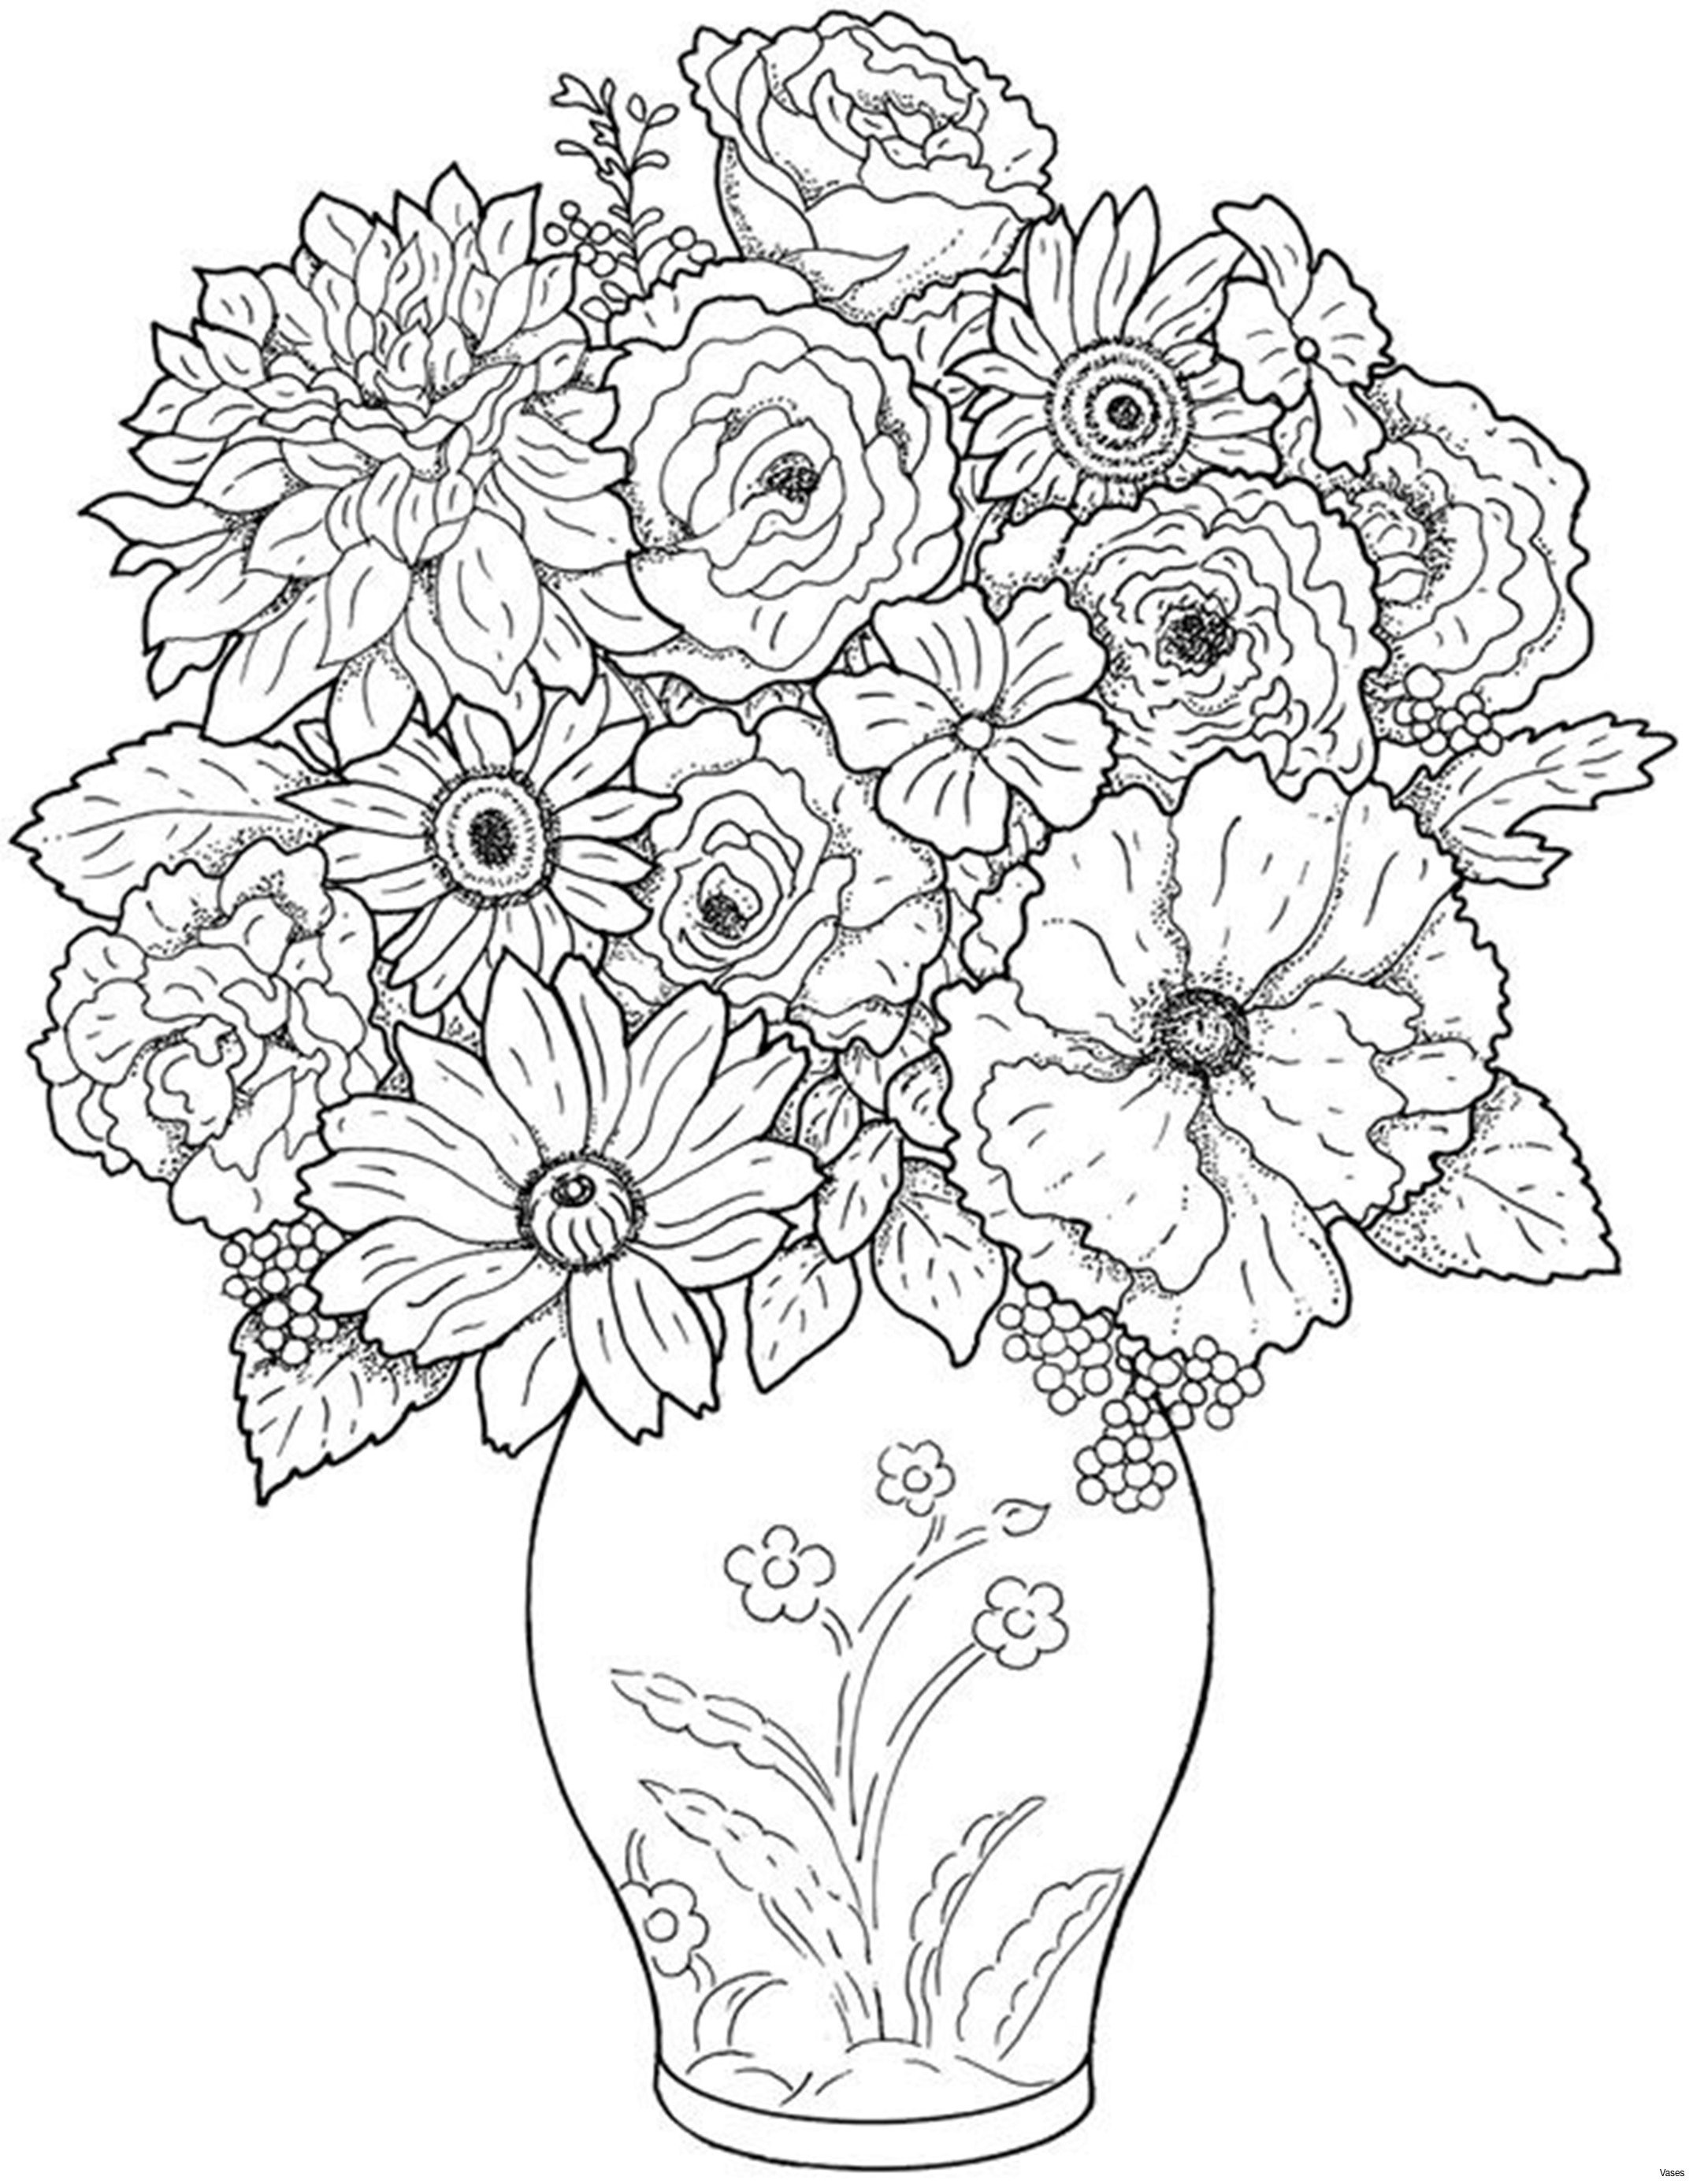 star wars flower vase of collection of coloring pages of vase with flowers download them with regard to brilliant design coloring page vase flower vase coloring page 2363630